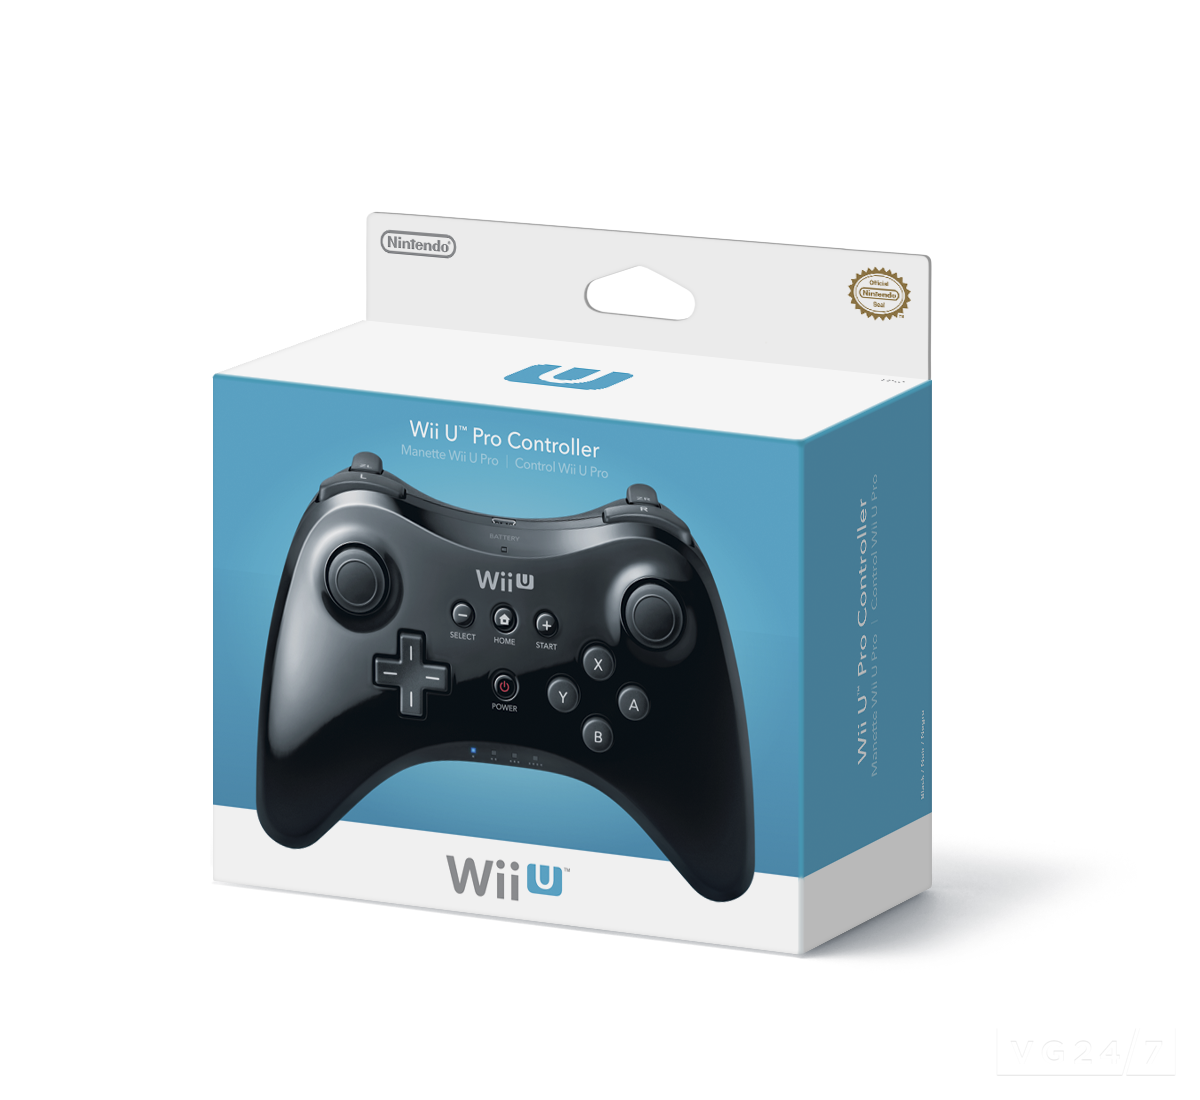 wii u console package art accessories revealed vg247. Black Bedroom Furniture Sets. Home Design Ideas